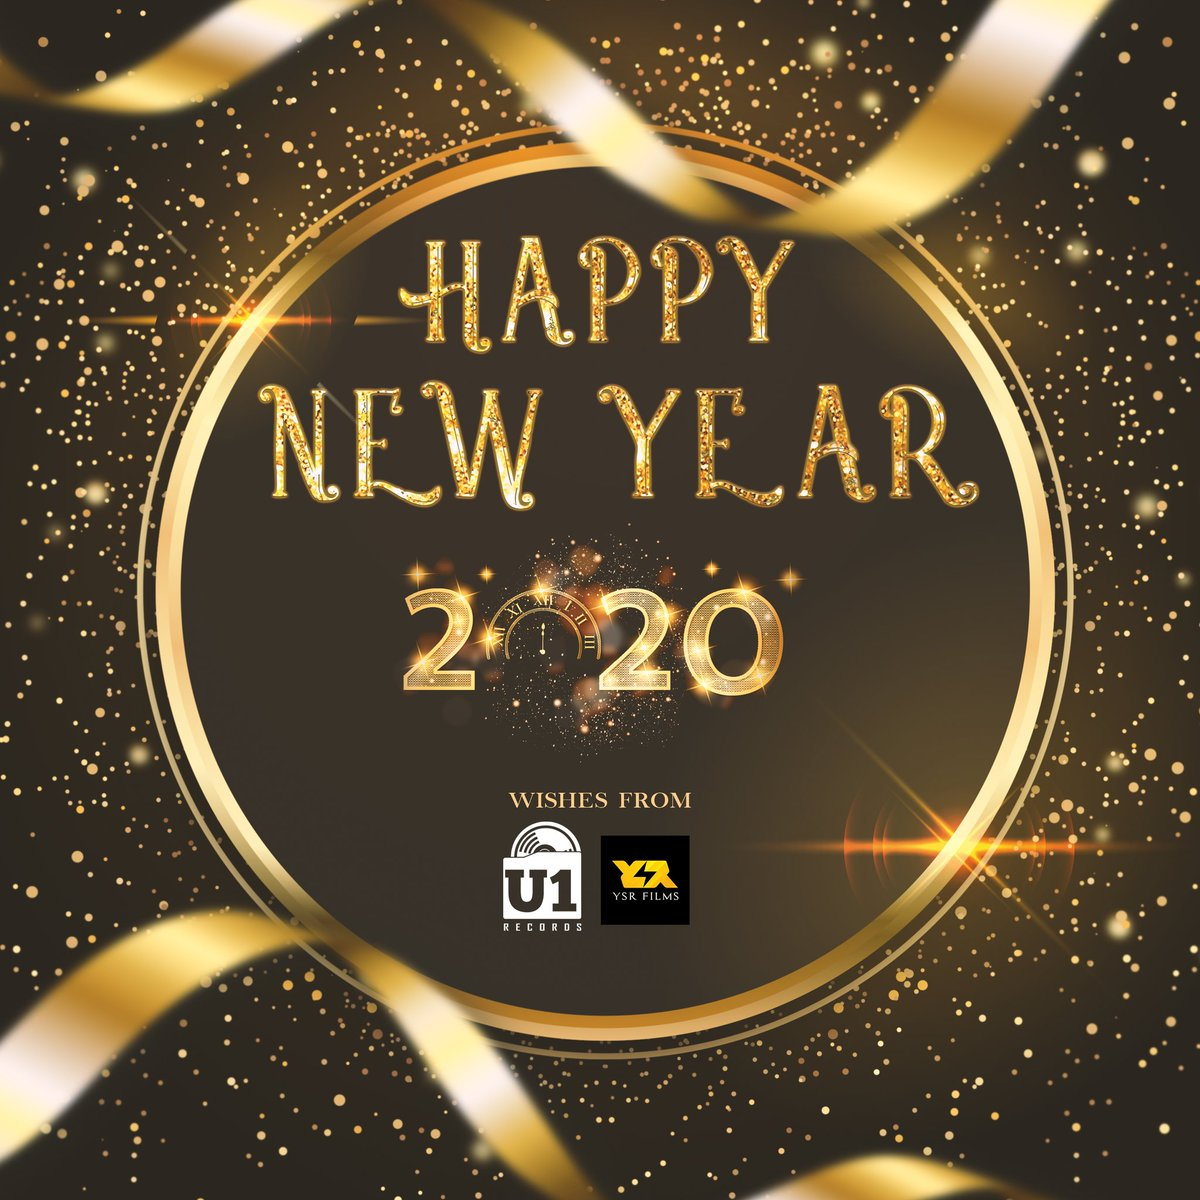 Happy New Year, Guys. Hope you all have a wonderful 2020 😊 Happiness, Peace & Much Love ♥️ - @U1Records @YSRfilms Family | @thisisysr https://t.co/bjiXNjnJxD